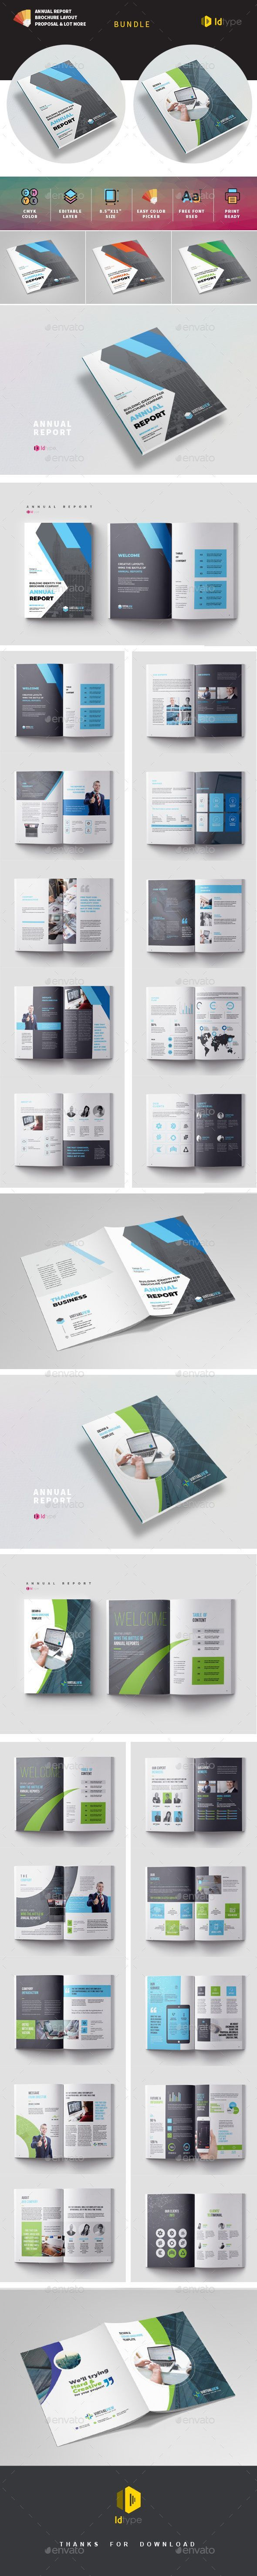 #Annual Report #Template #Bundle - Magazines Print Templates #annualreports #Annual Report #Template #Bundle - Magazines Print Templates #annualreports